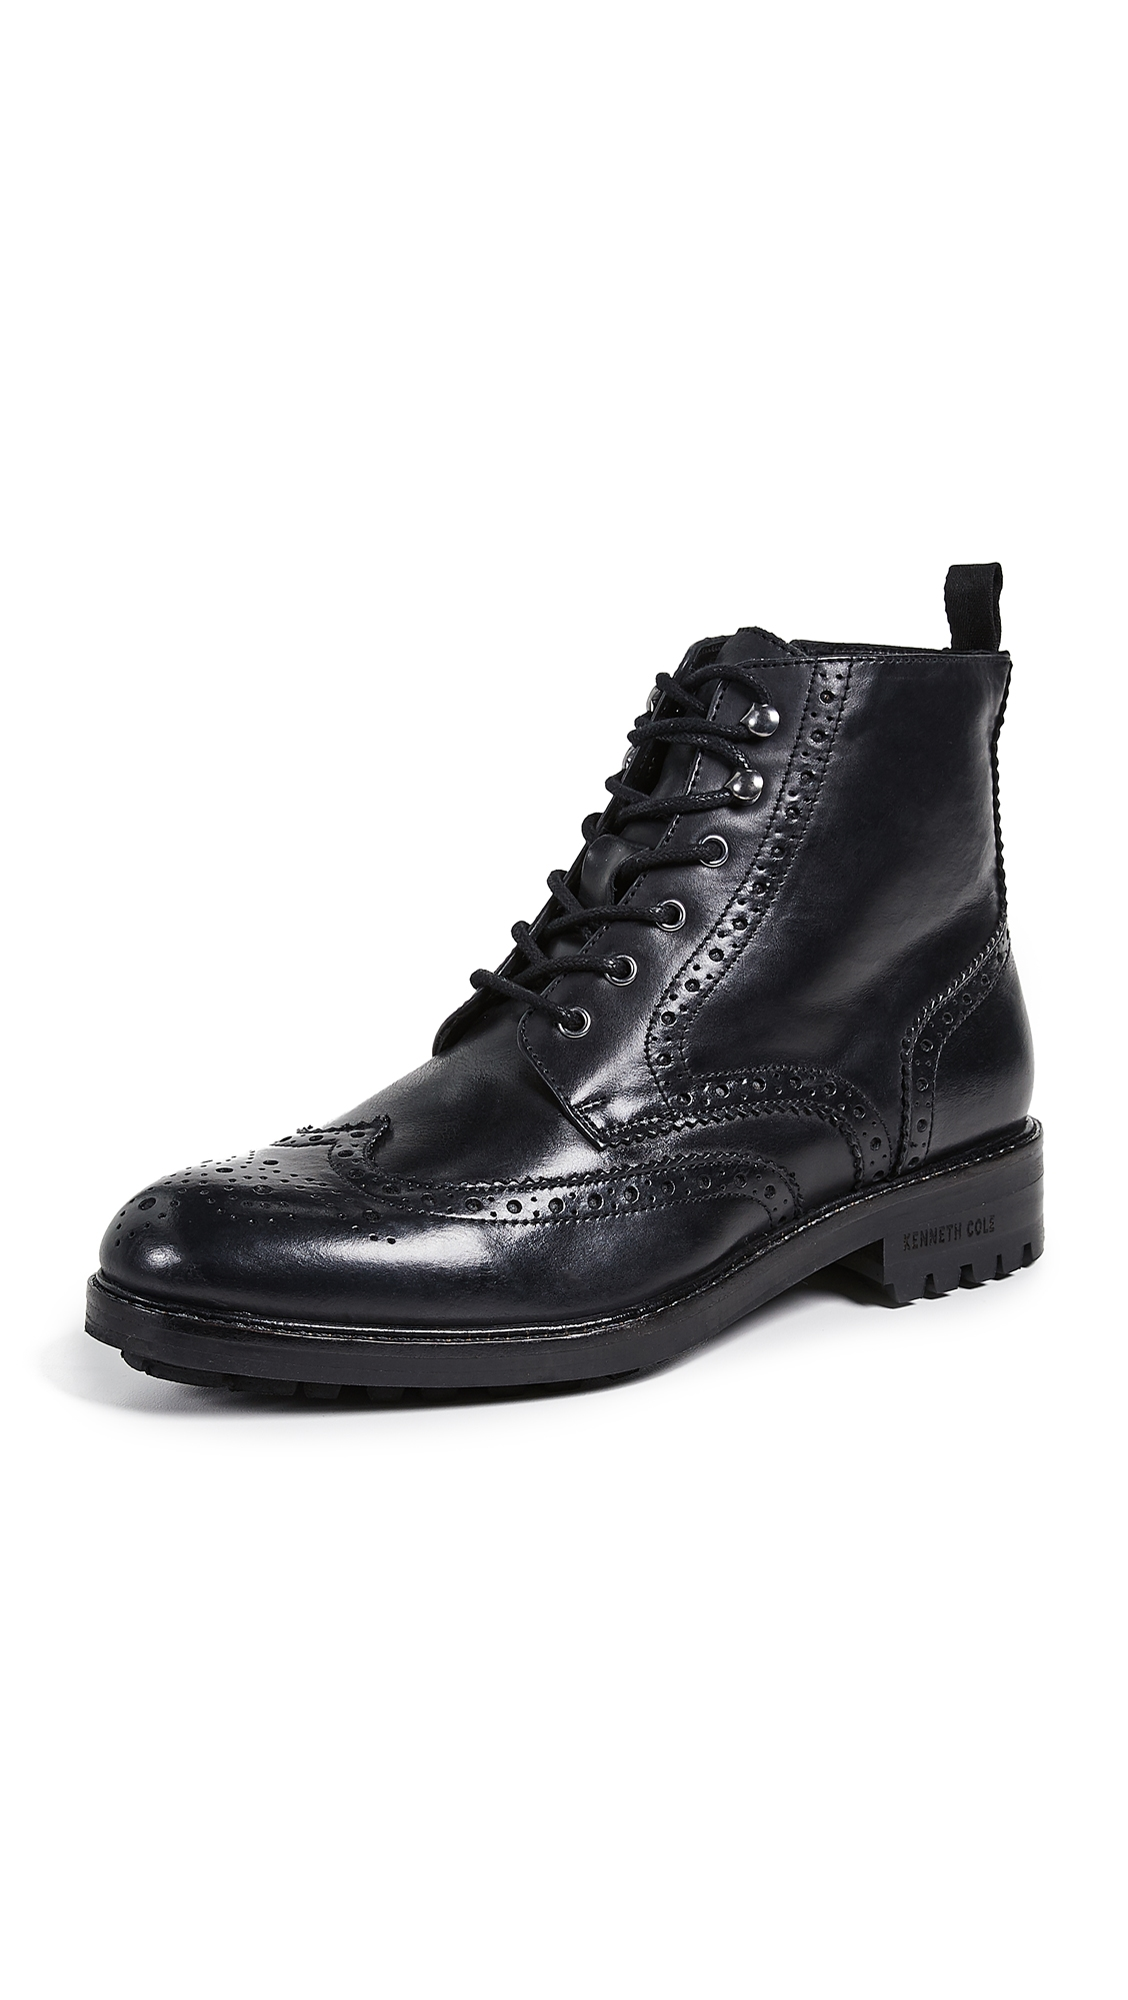 KENNETH COLE Men'S Maraq Leather Wingtip Boots in Black